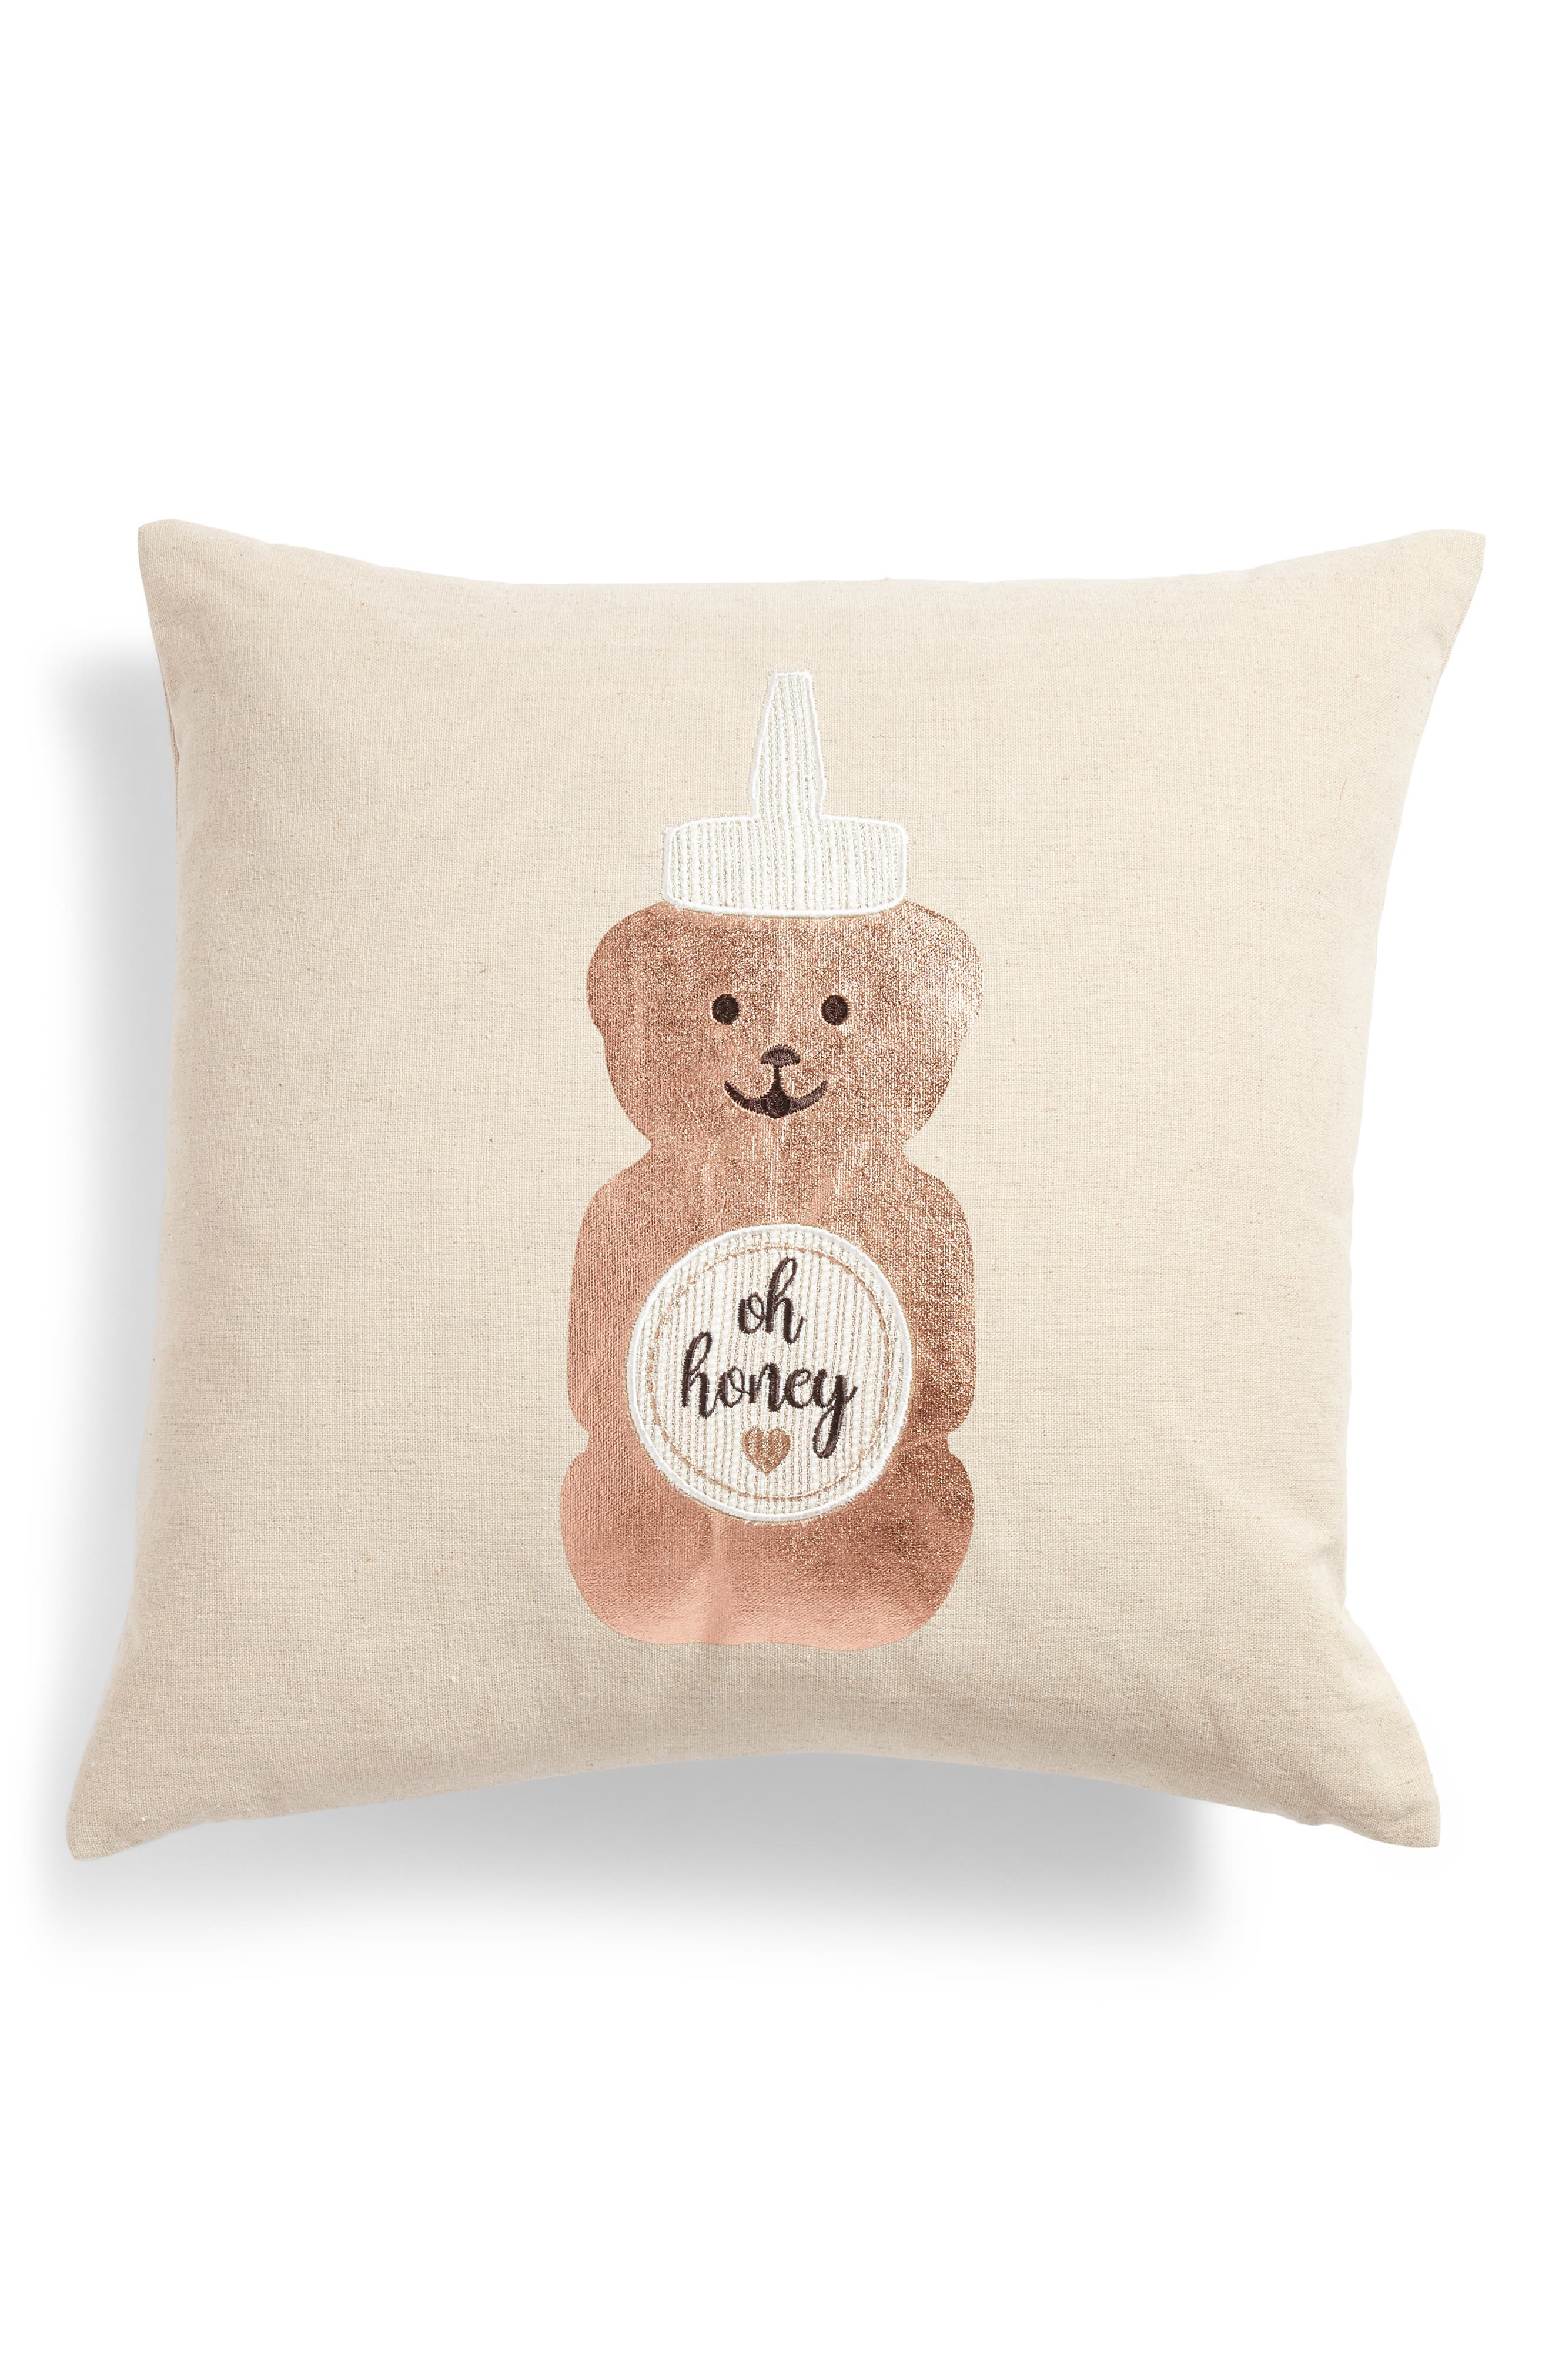 Oh Honey Accent Pillow,                         Main,                         color, 020